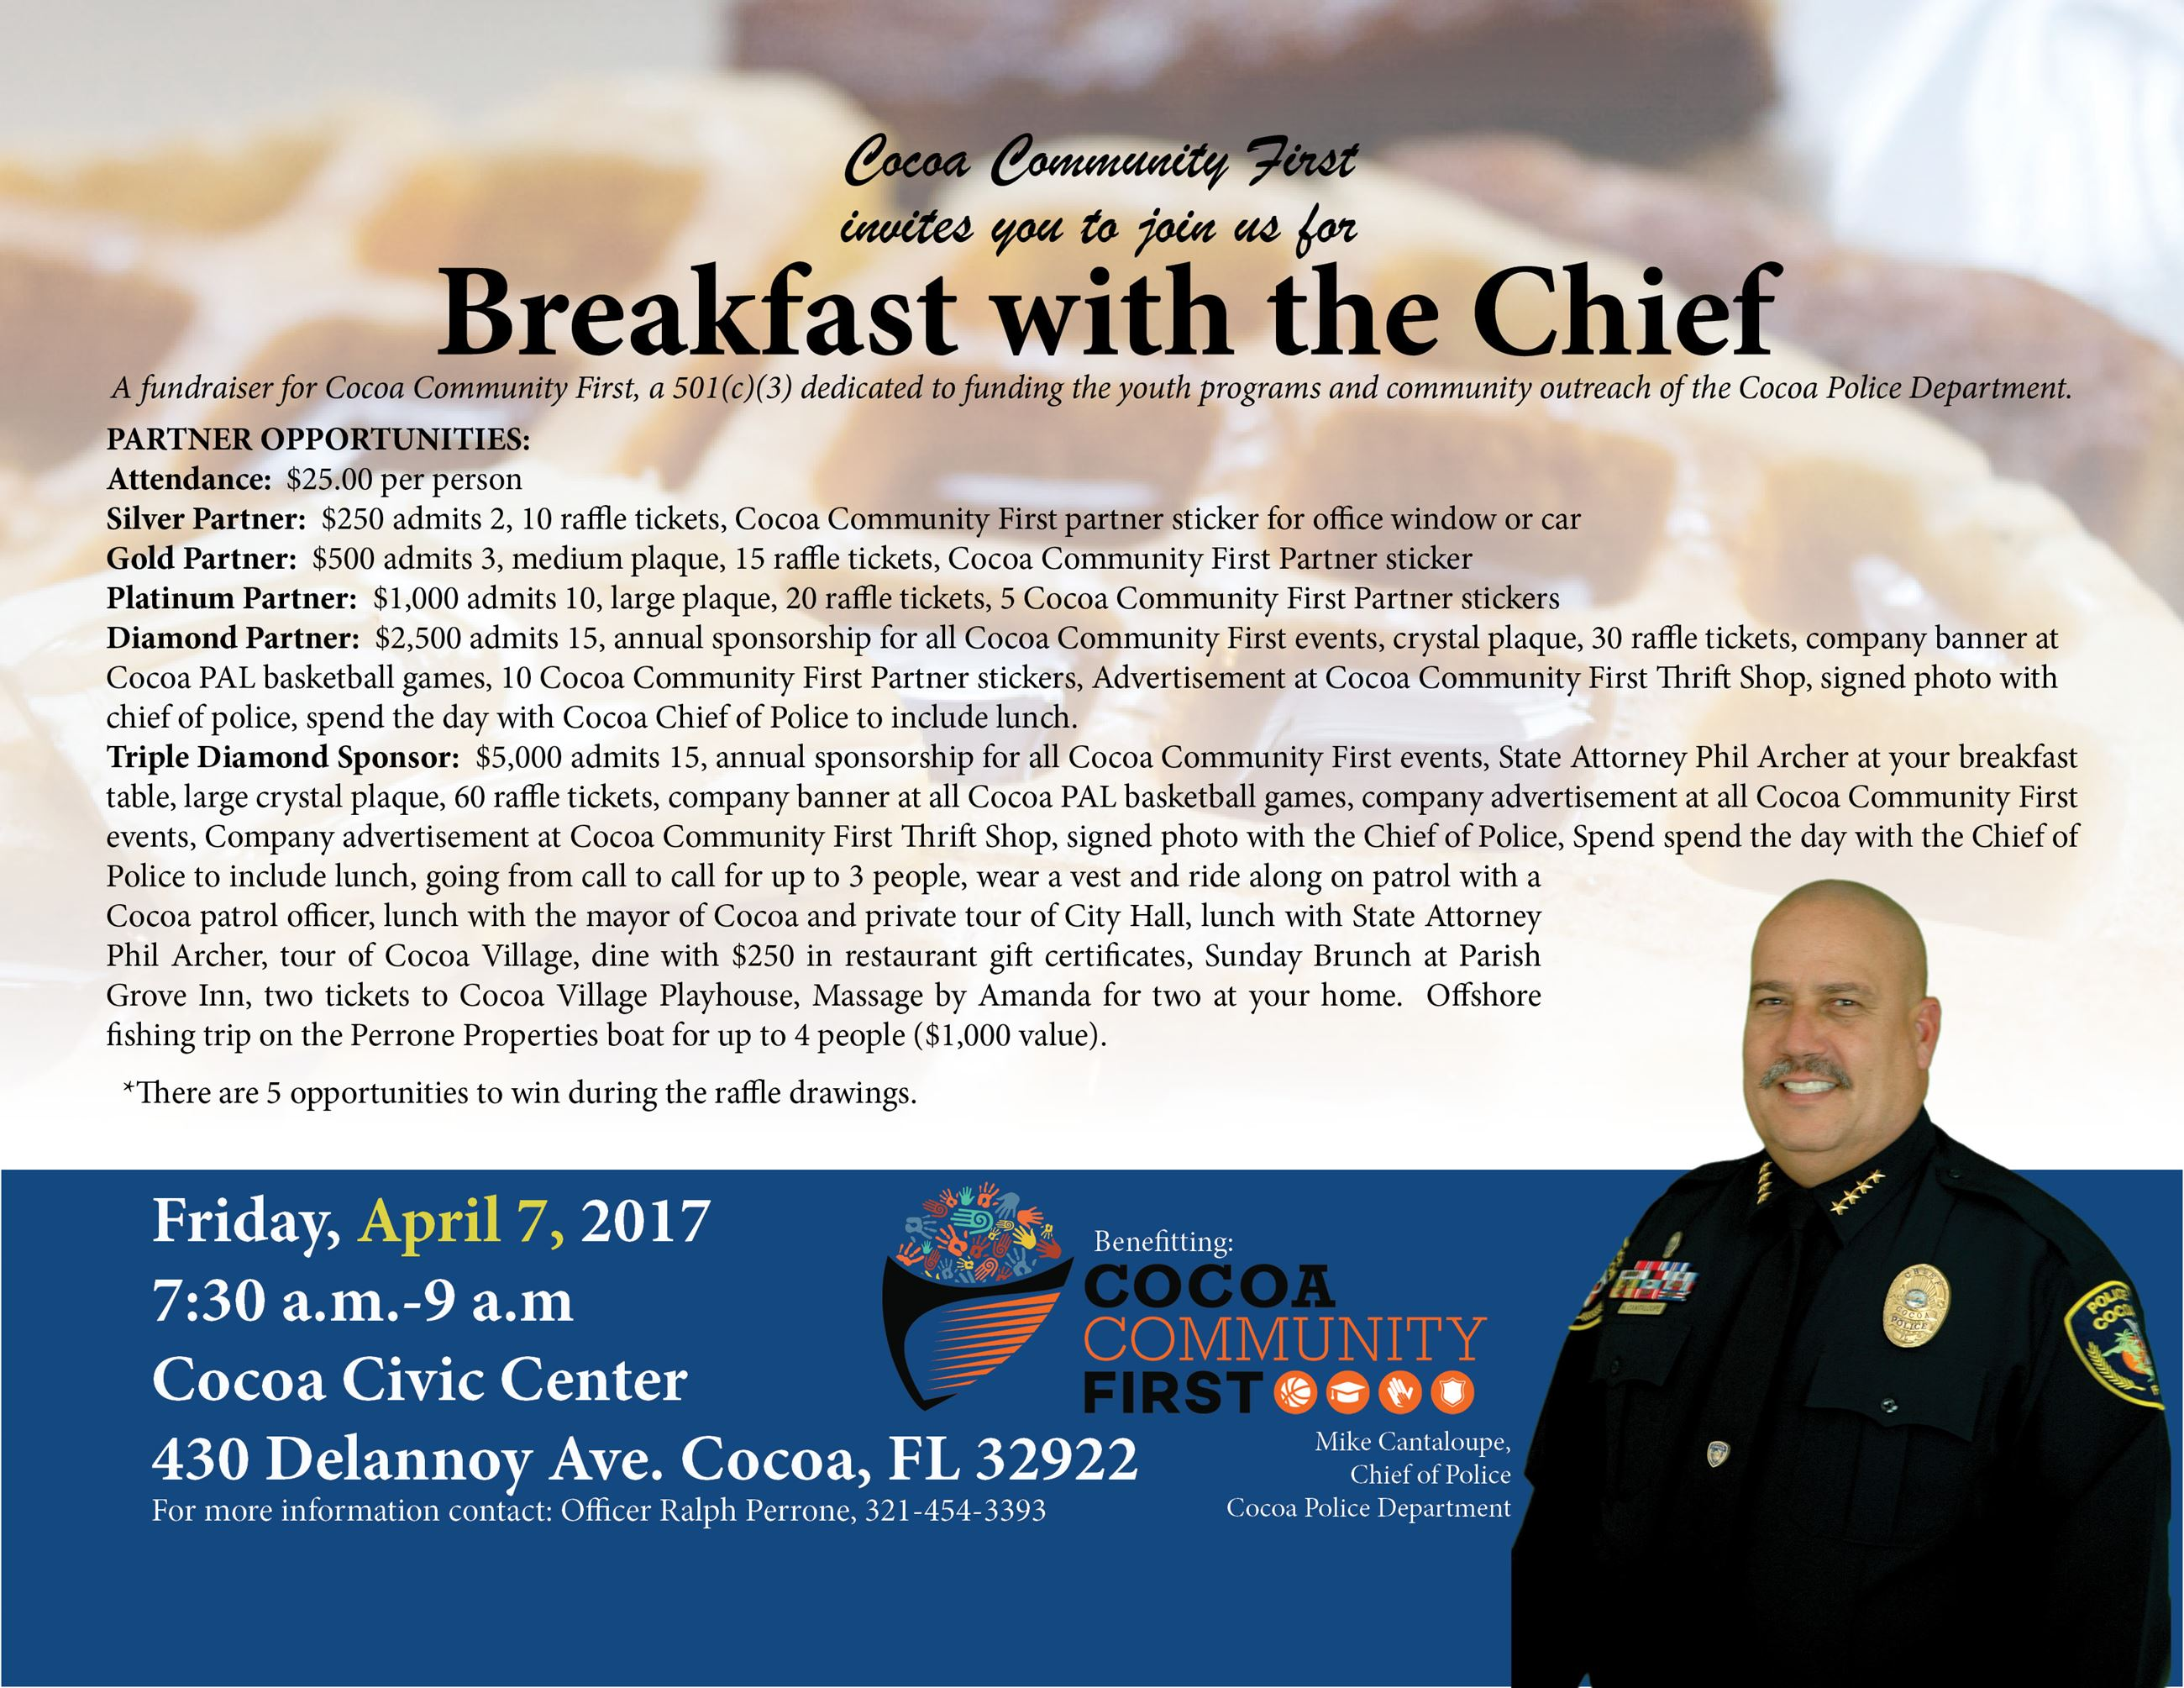 breakfast invite and sponsor opportunities